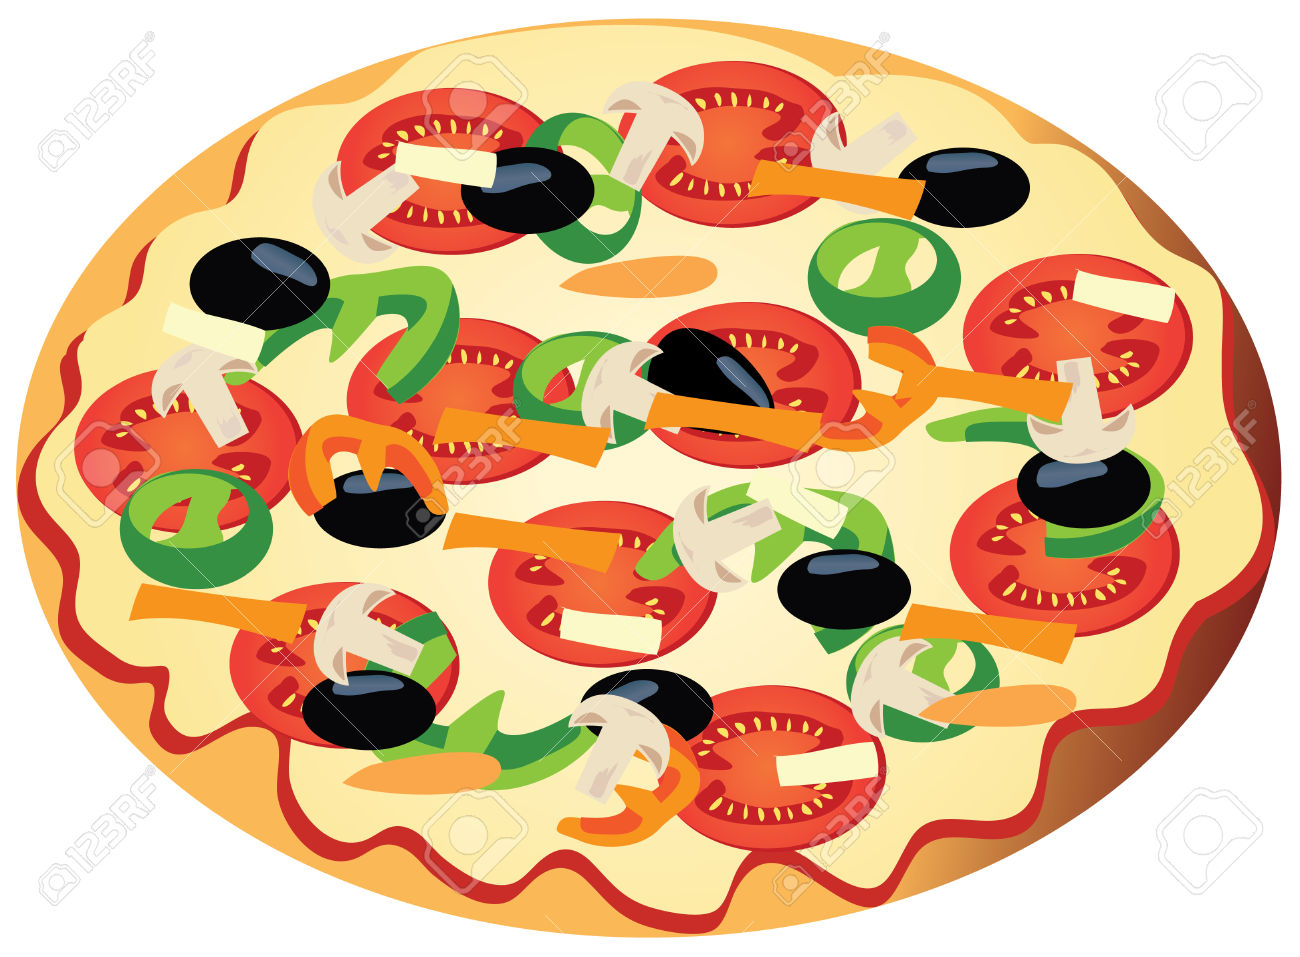 Pizza clipart salad. Free download best on